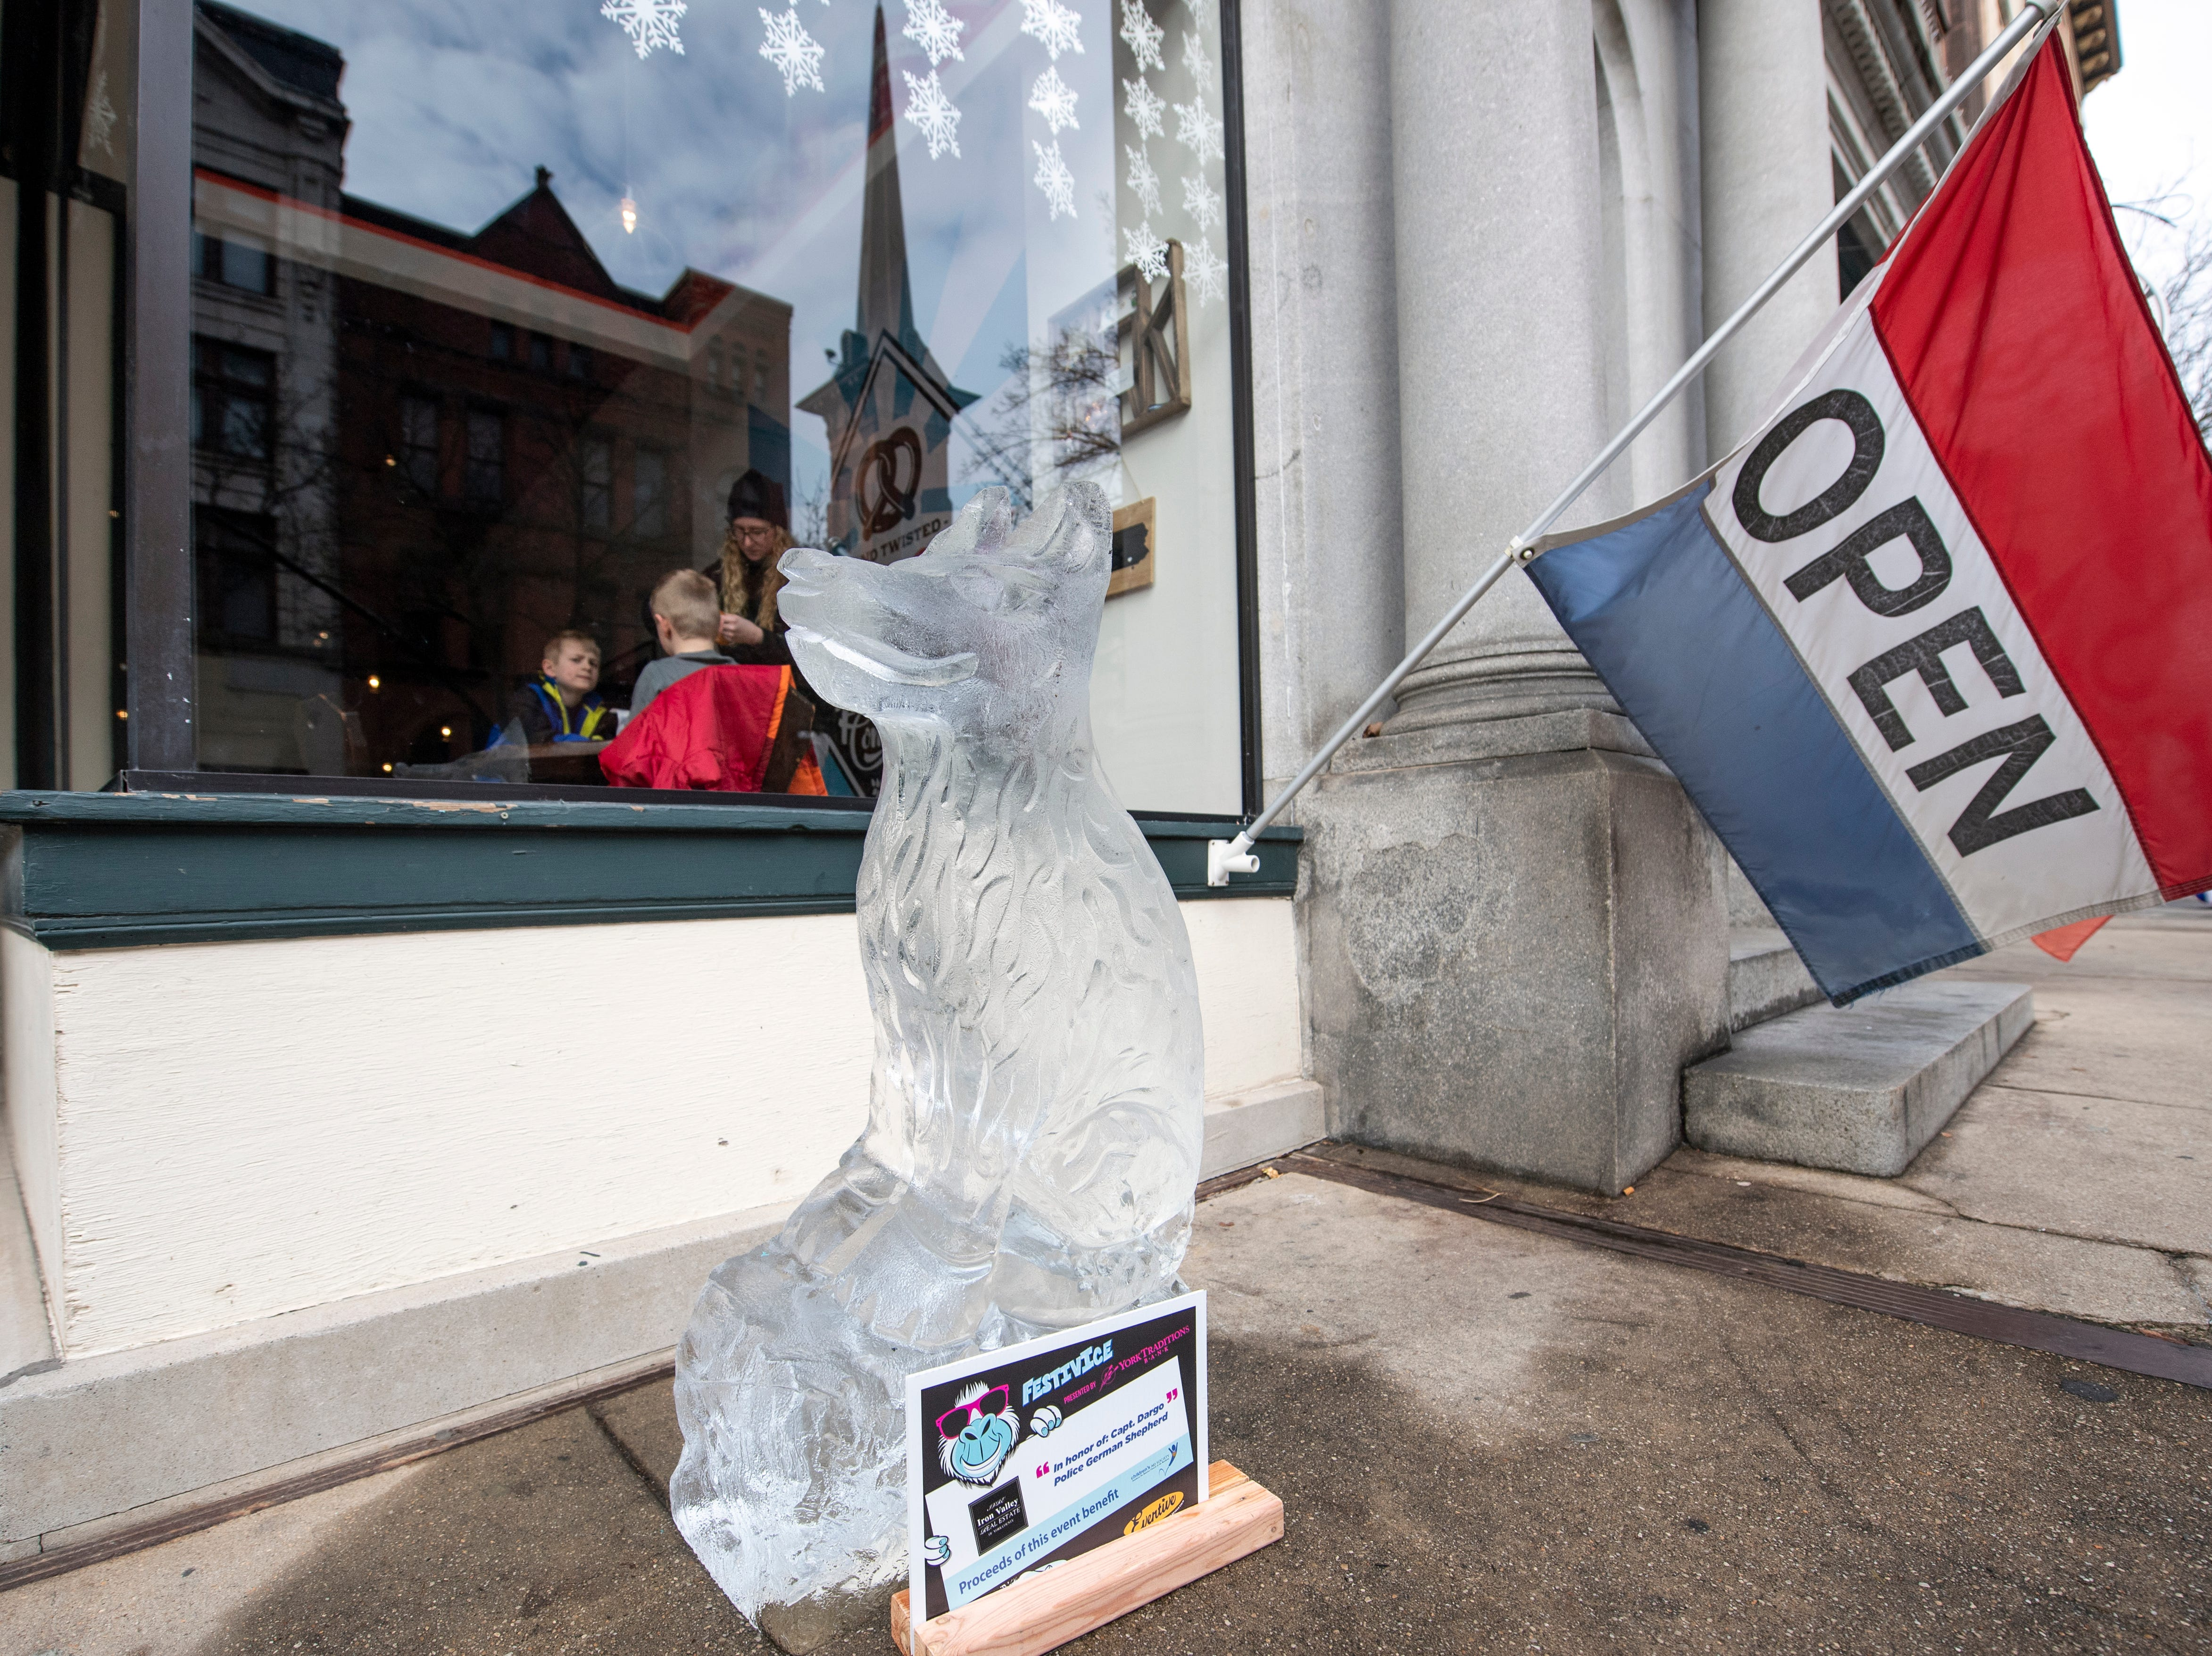 An ice sculpture of Drago, the veteran of York County Sheriff's Department's K-9 unit, is one of many ice sculptures downtown, Friday, Jan. 18, 2019. The FestivICE ice festival has interactive ice sculptures, an ice slide and more. The three-day event ends Saturday.